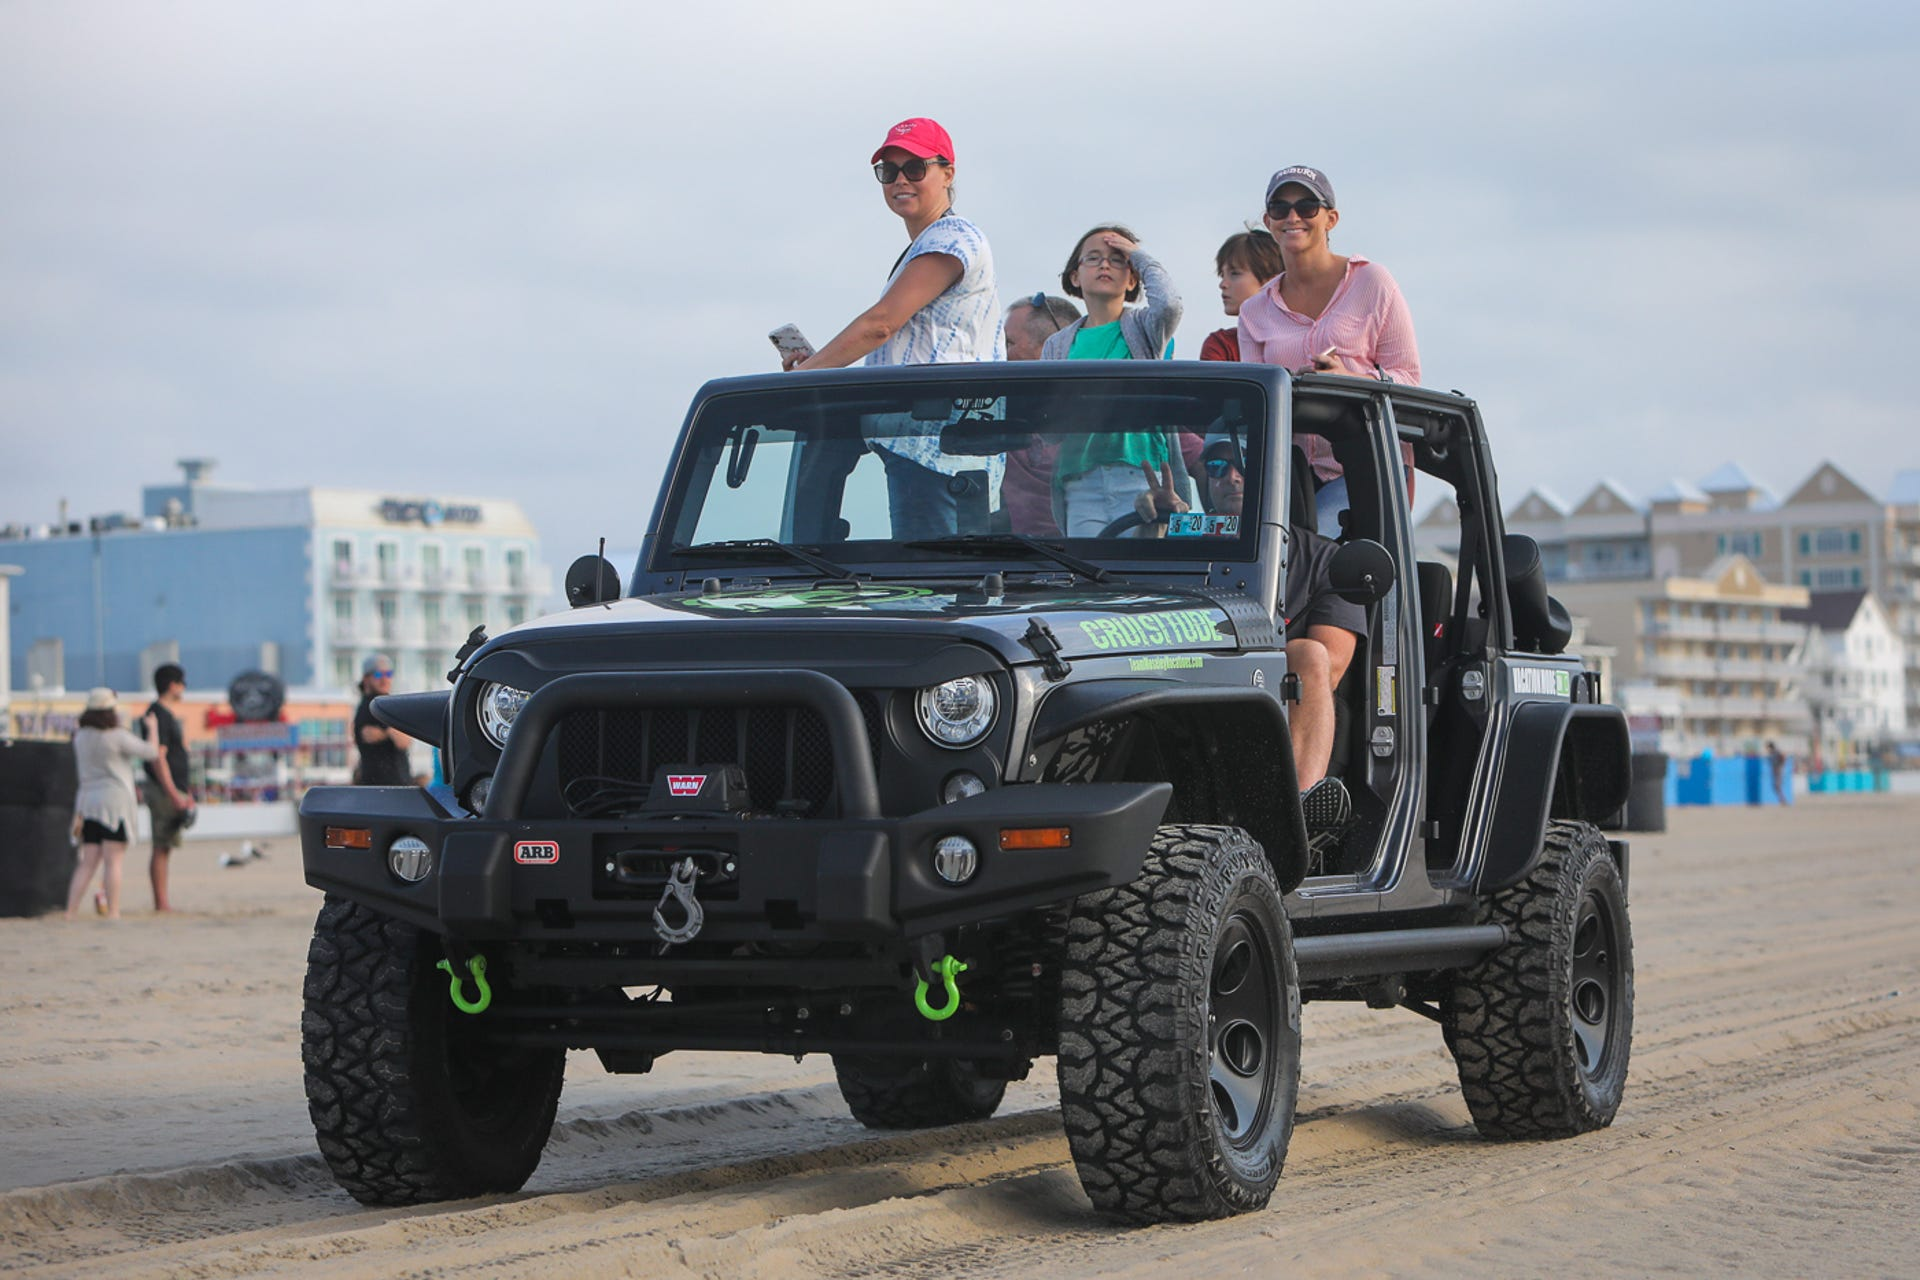 Ocean City Jeep Week >> Photos Jeeps Parade Across The Beach During Ocean City Jeep